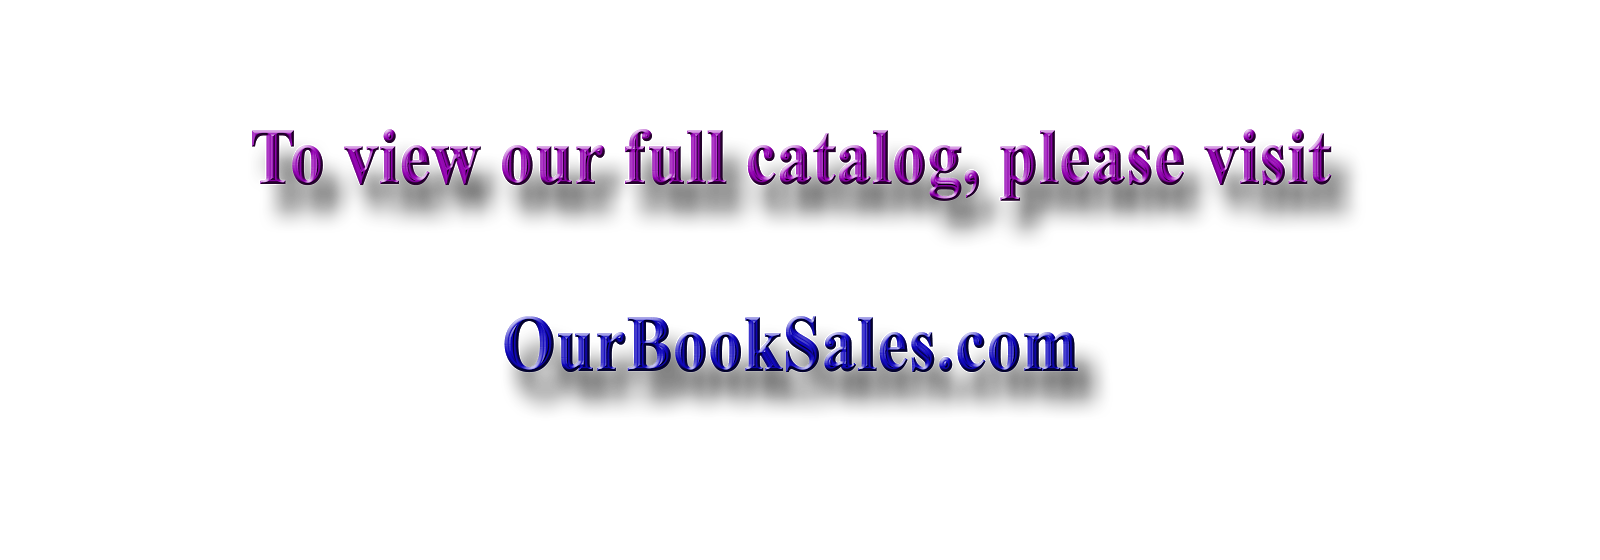 To View Our Full Catalog, Please Visit OurBookSales.com